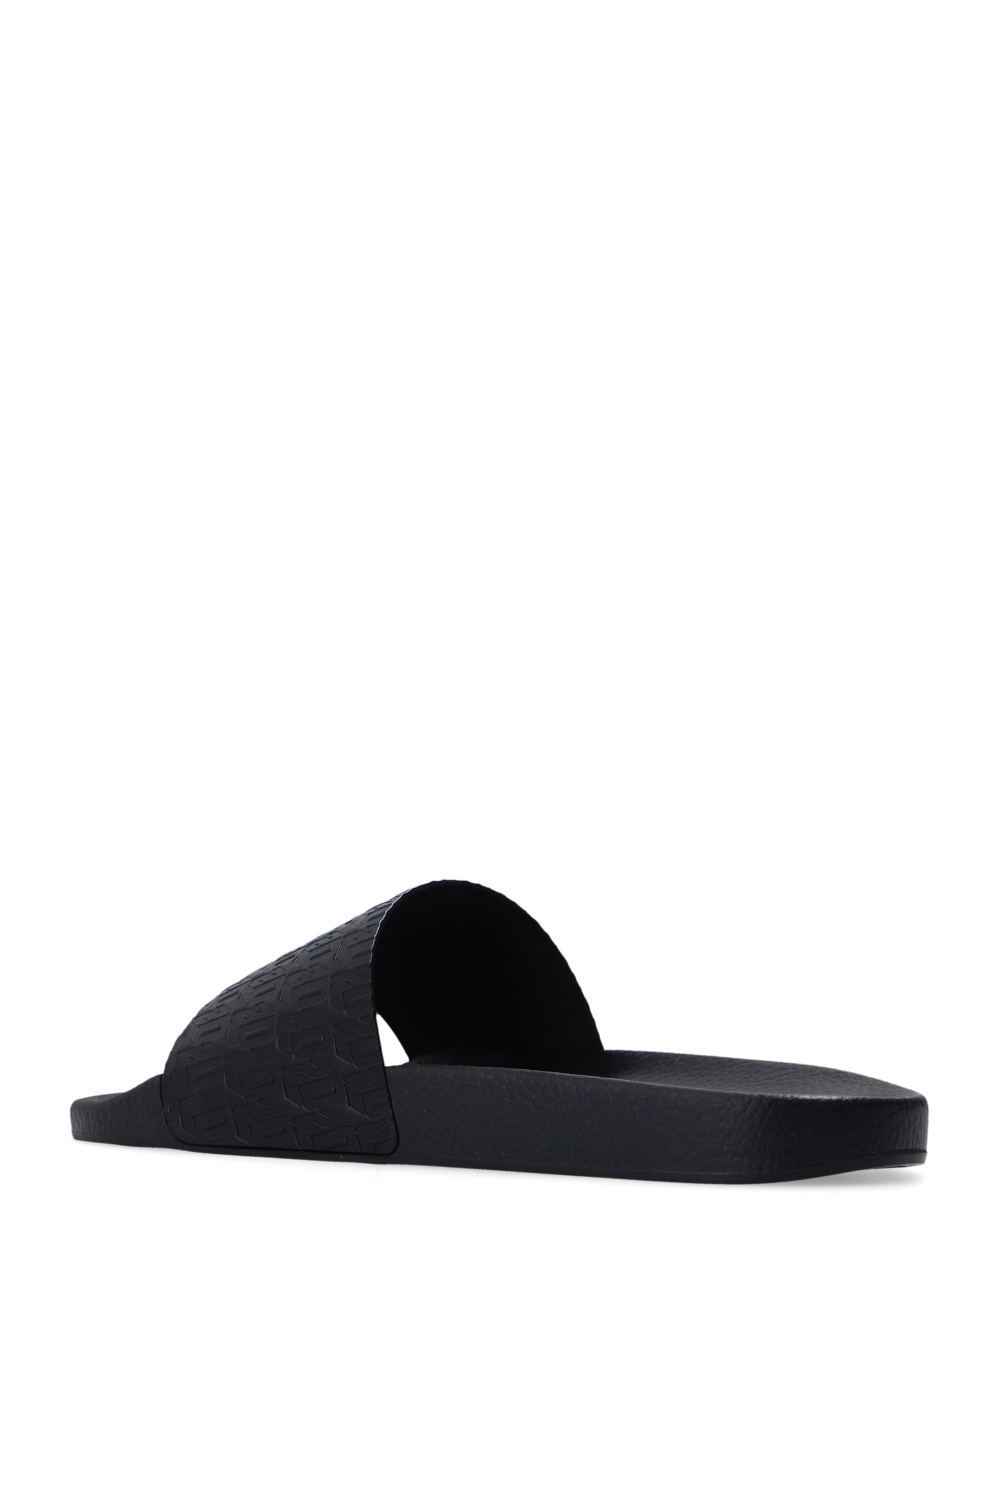 Dsquared2 Leather slides with logo